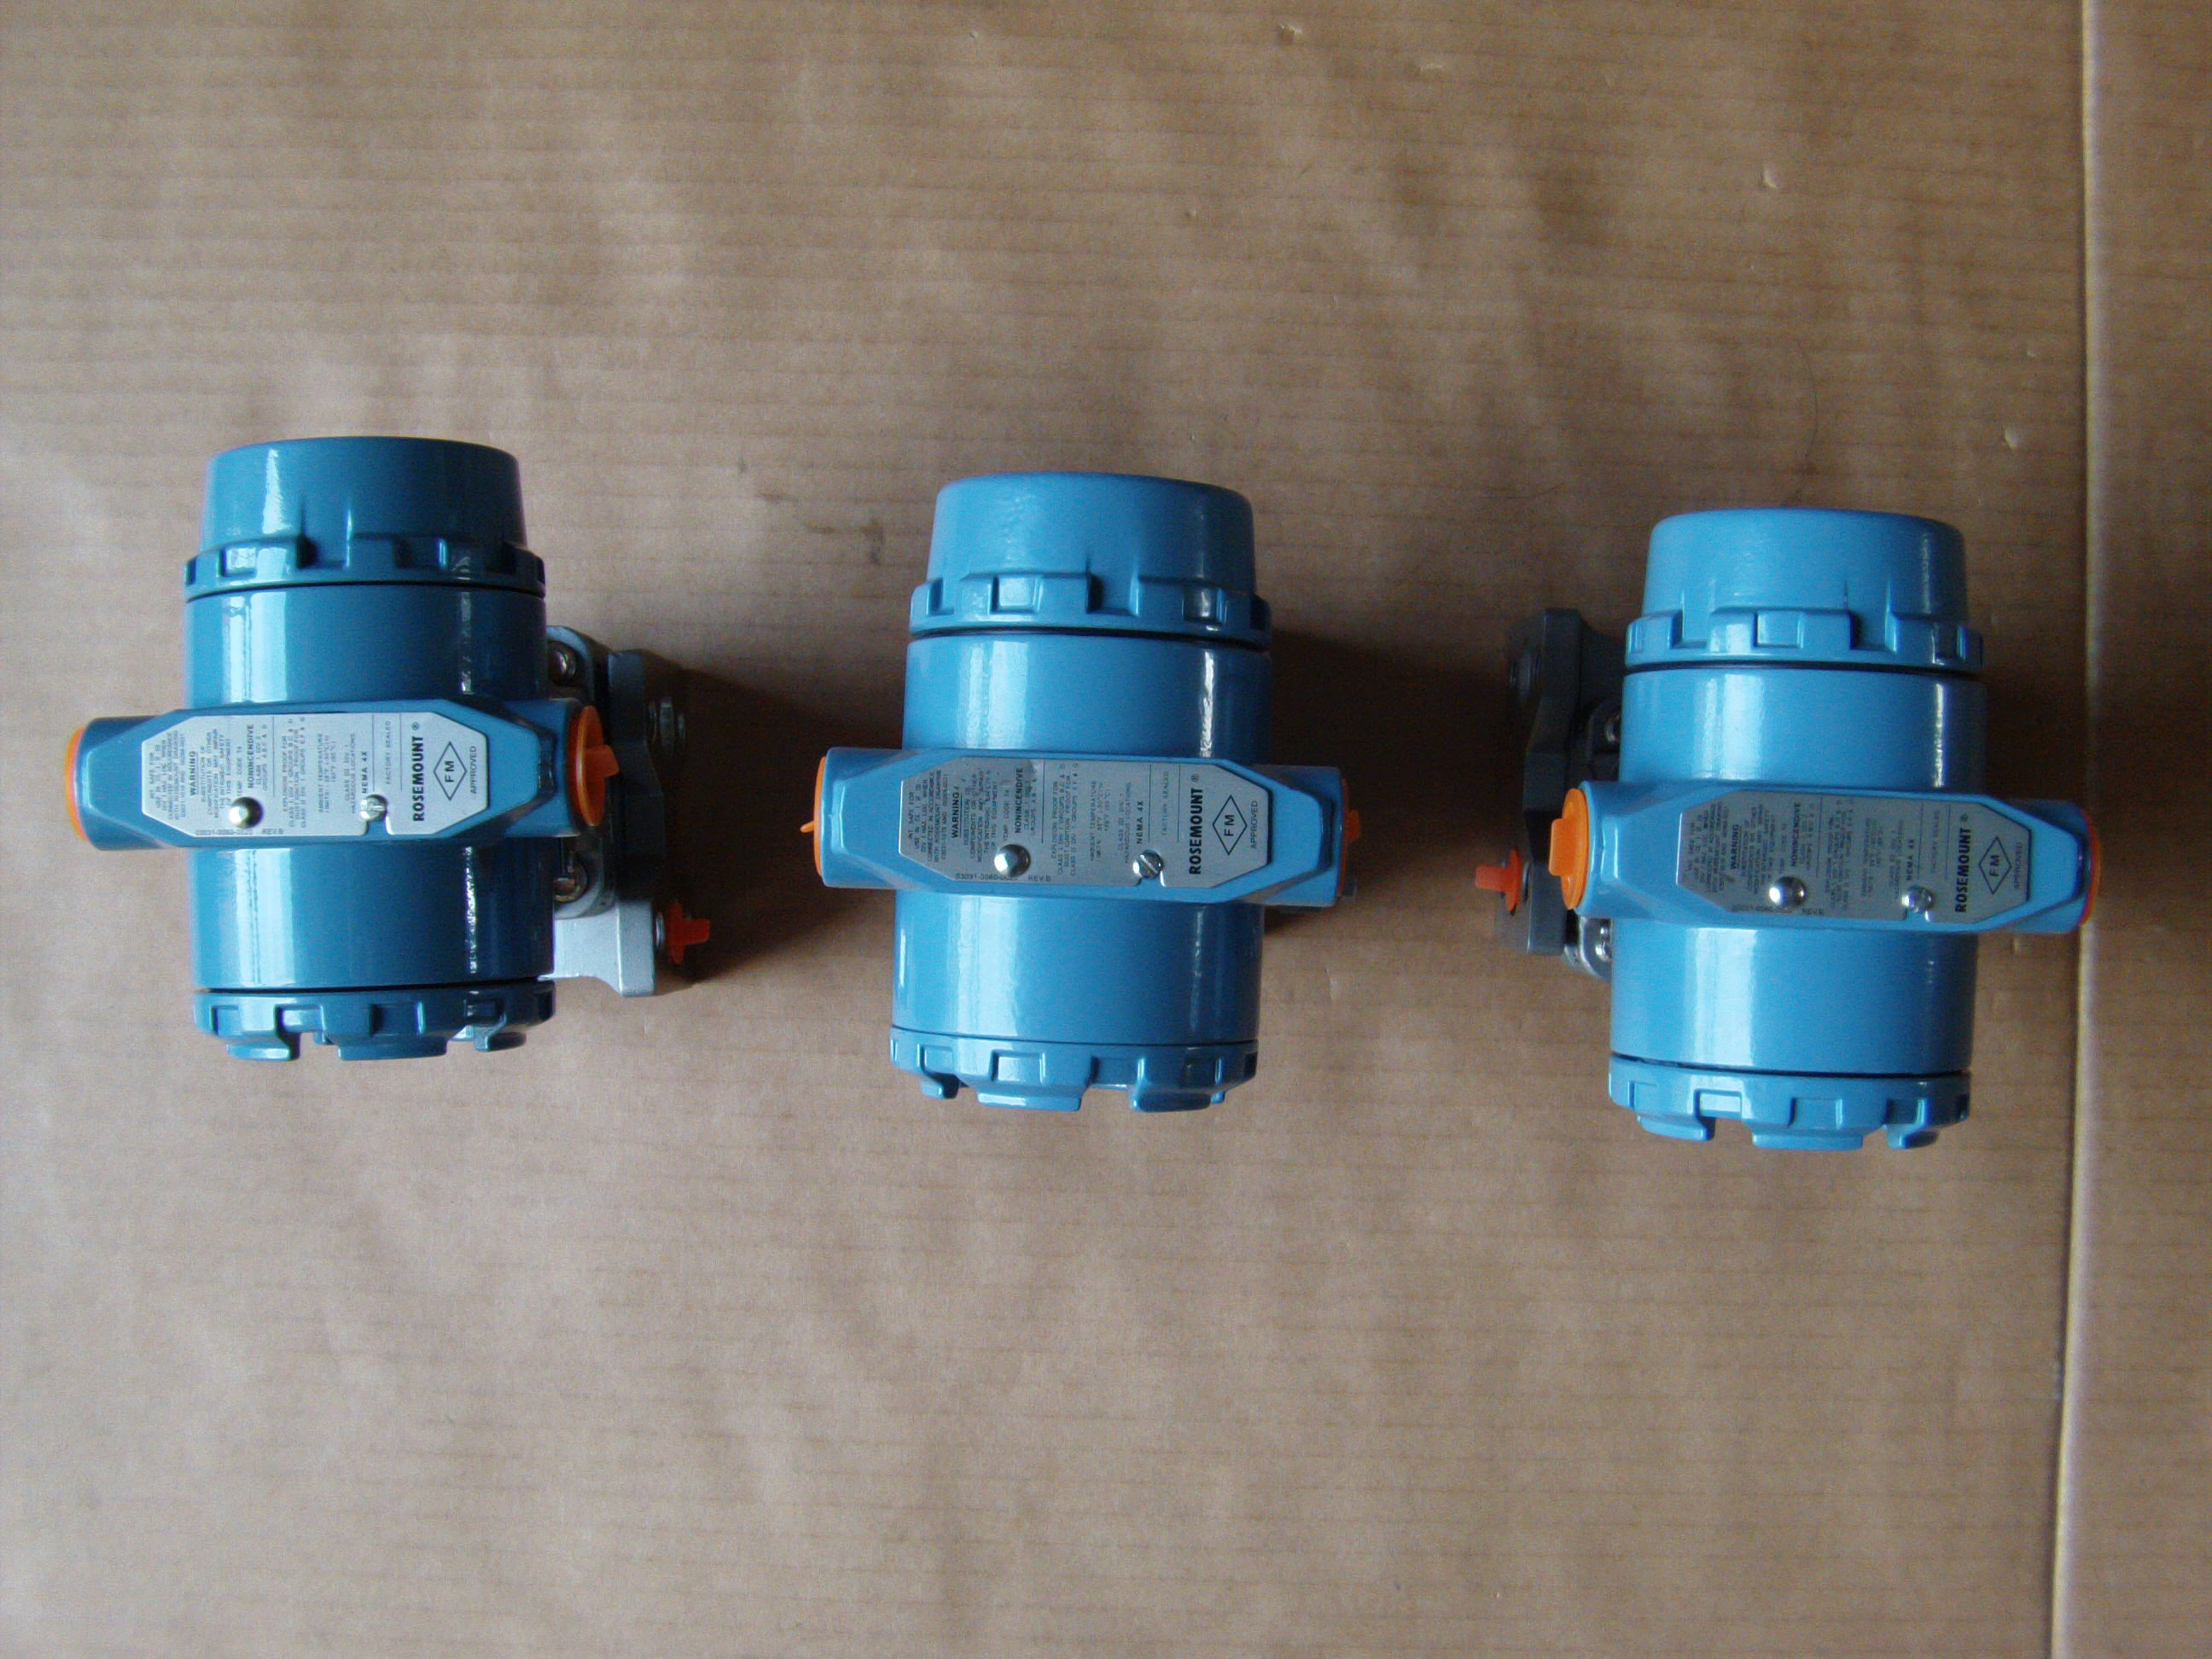 Rosemount 2051pressure transmitter with 4-20Am suppliers and